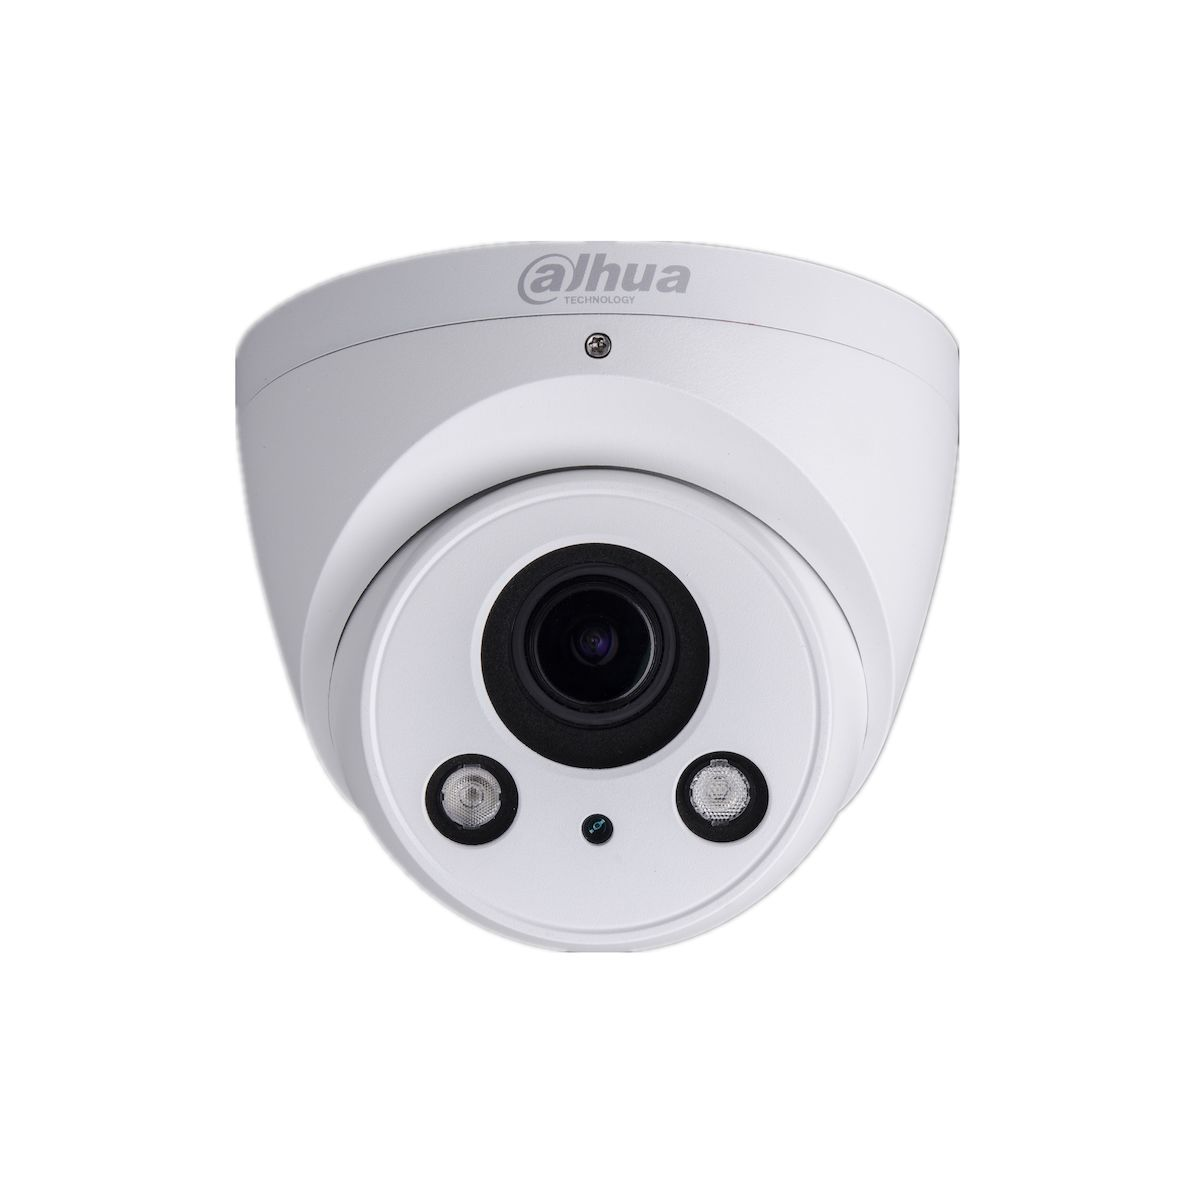 Dahua DH-IPC-HDW2431RP-ZS 4MP Turret Network Camera